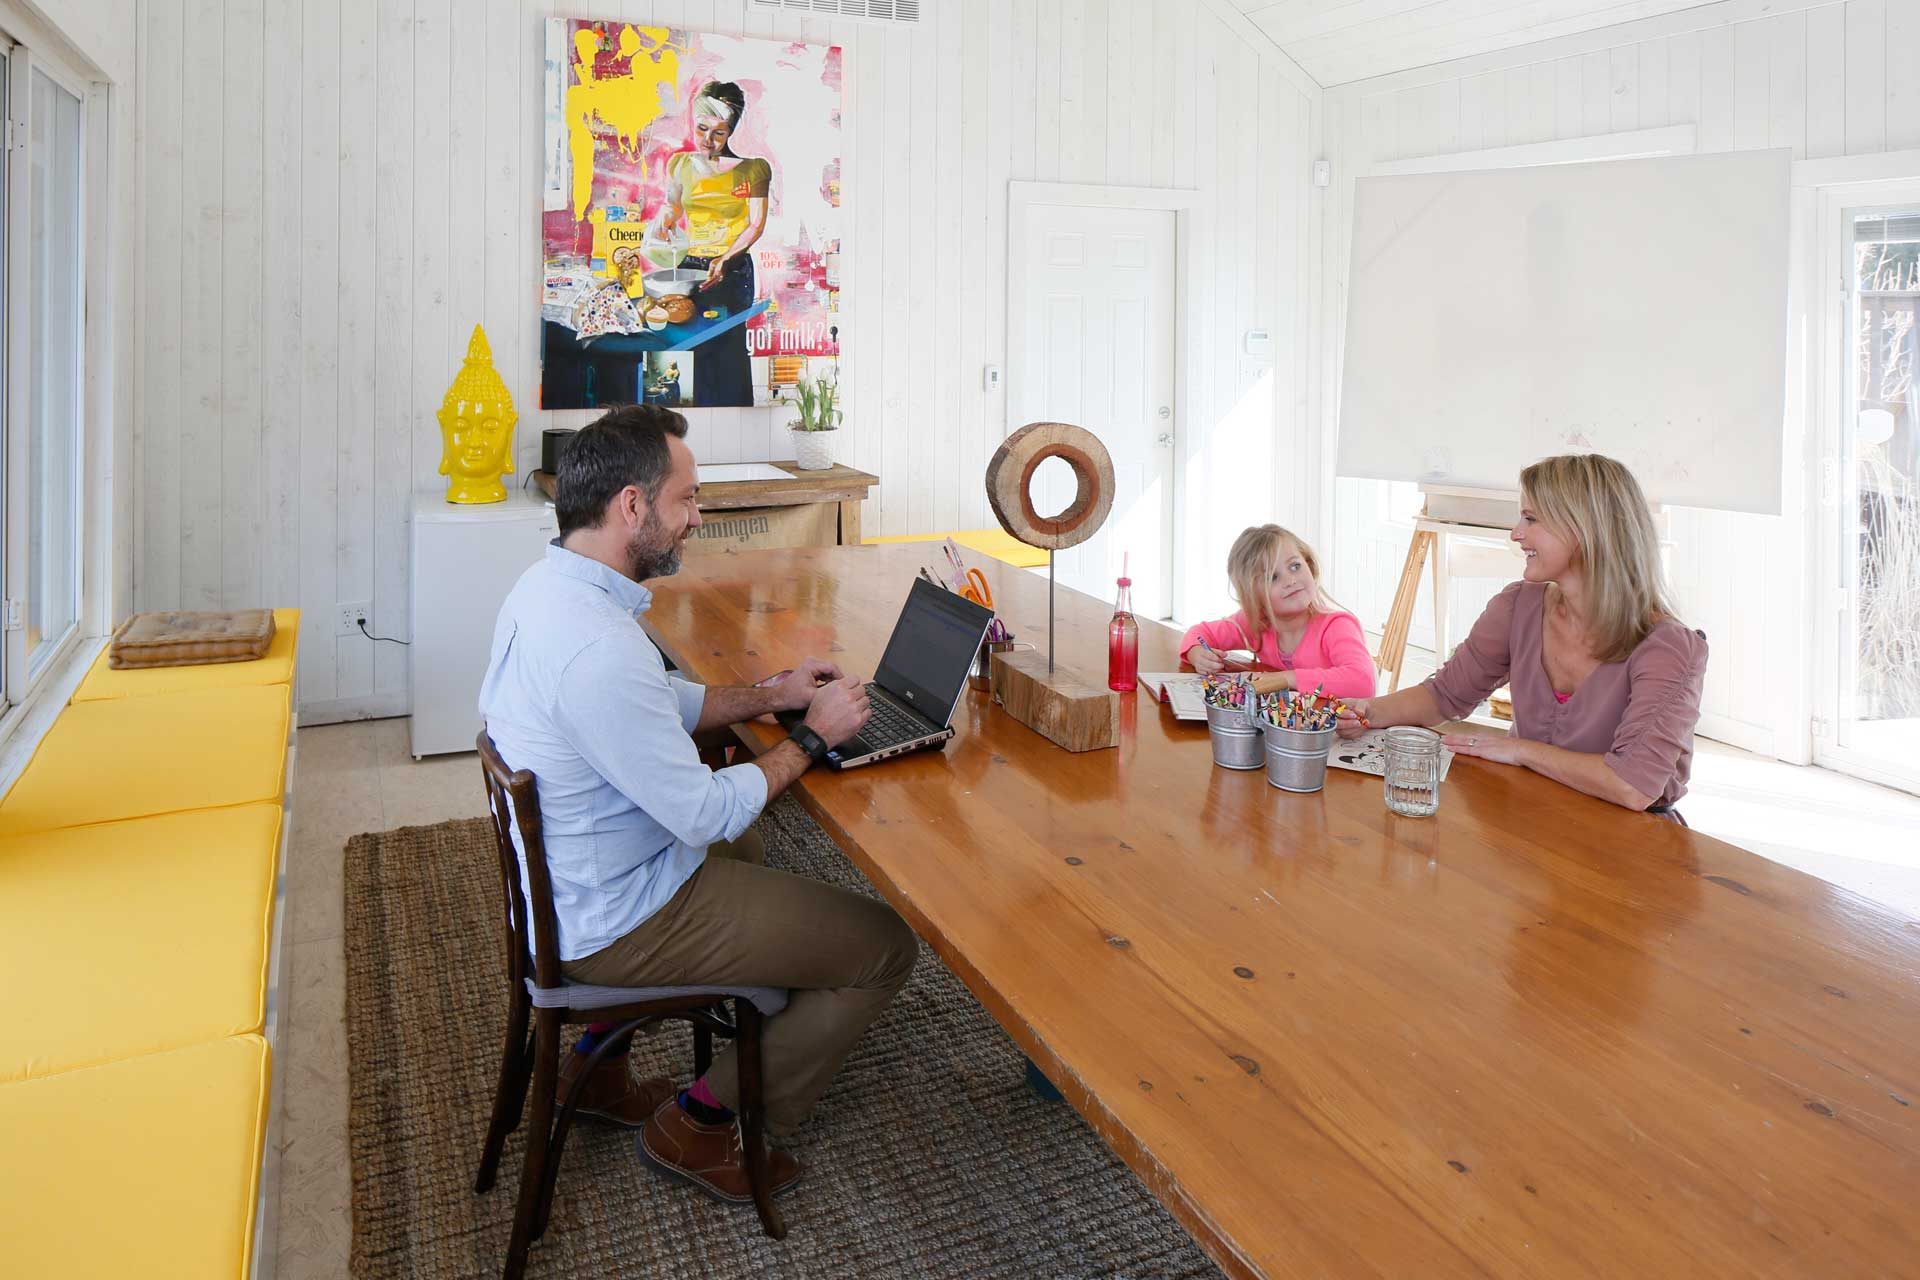 Connector between original house and garage serves as a light-filled family creative space - Broad Ripple Bungalow Phase 1 - Indianapolis, IN - Indianapolis Monthly - Photo by Anthony Valainis